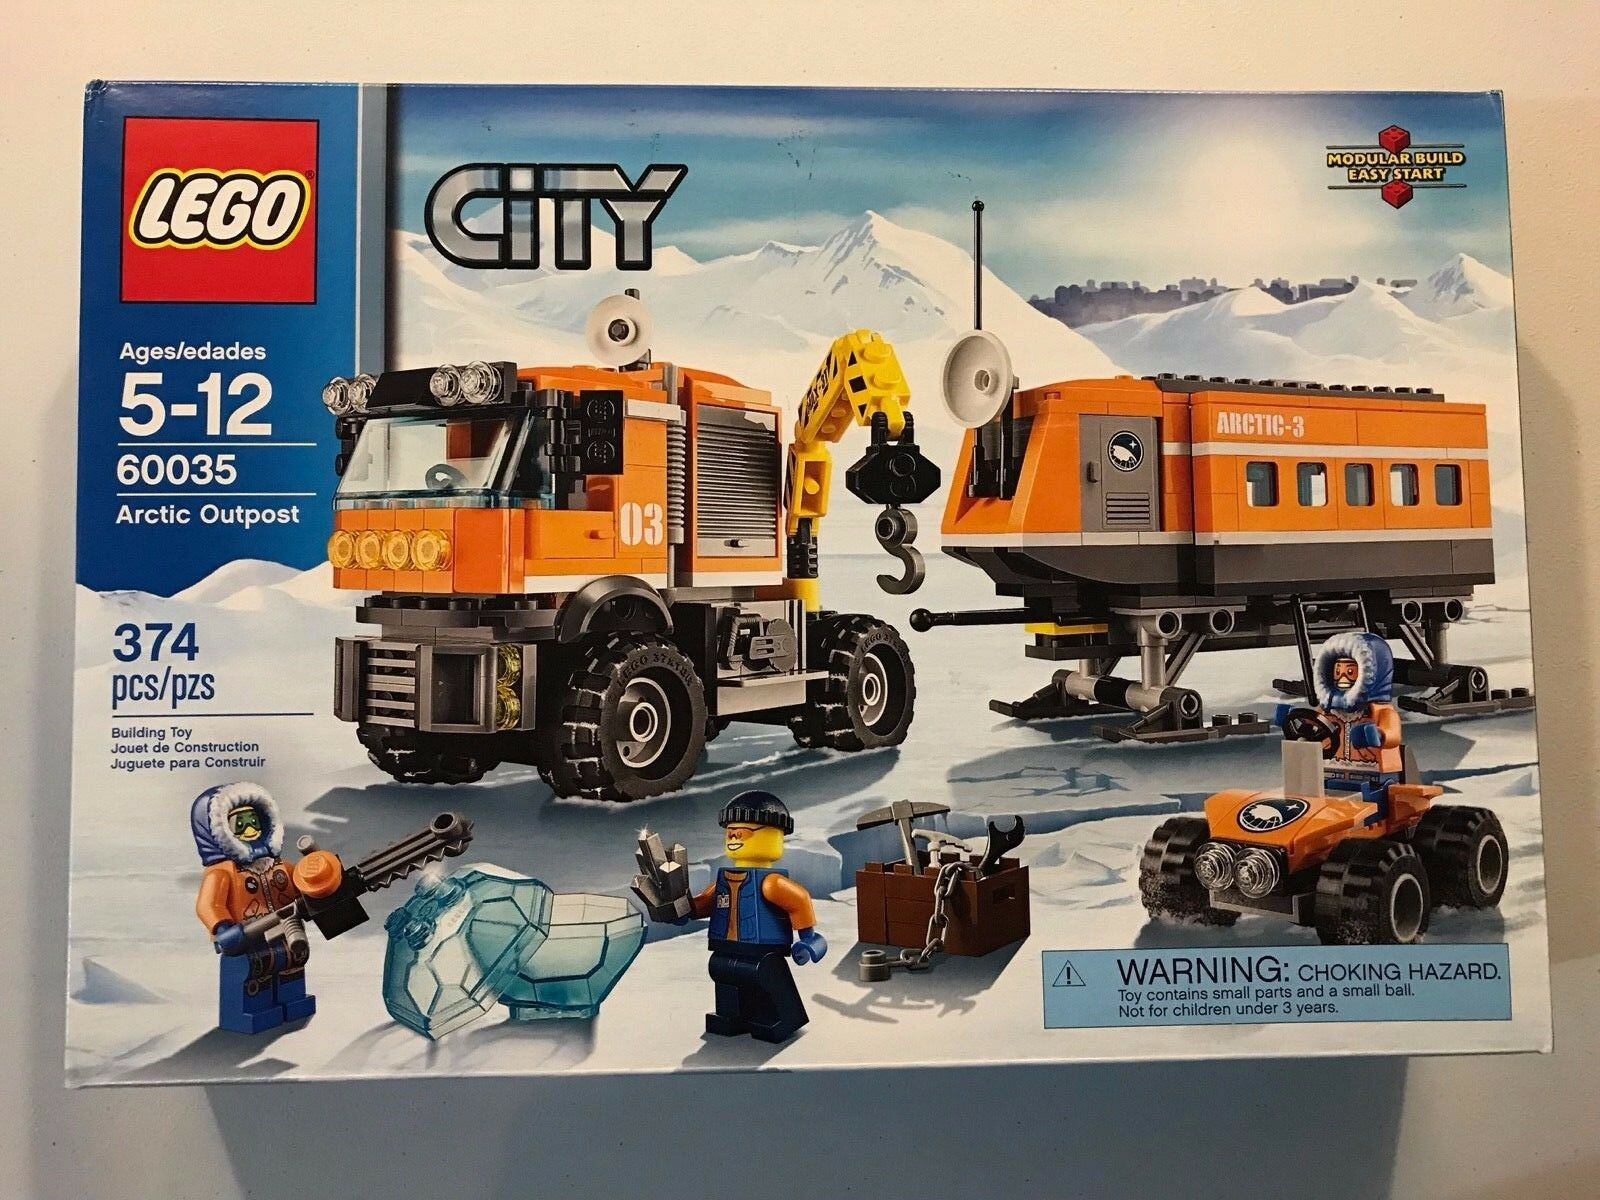 LEGO City 60035 Arctic Outpost Brand New Factory Sealed 374 pieces 2014 RetiROT